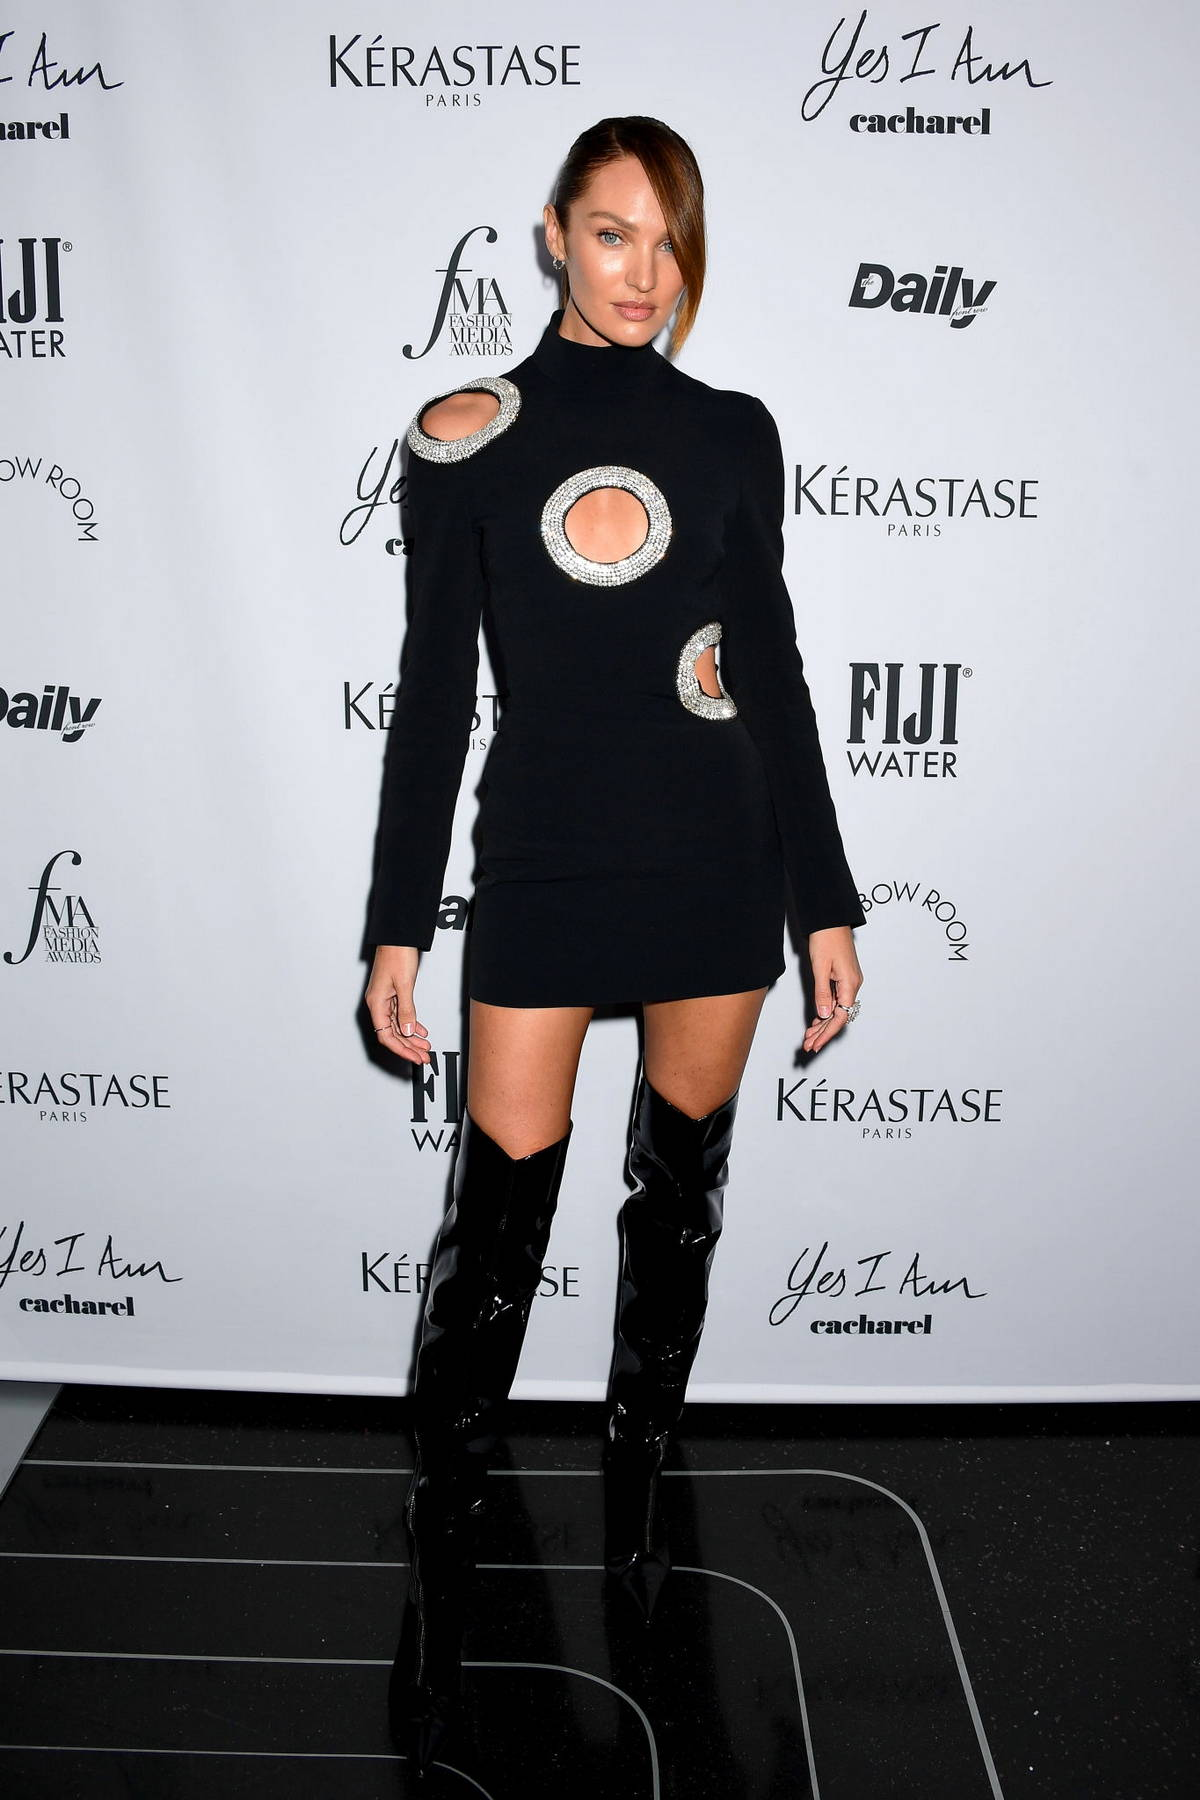 Candice Swanepoel attends the 2021 Daily Front Row Fashion Media Awards in New York City